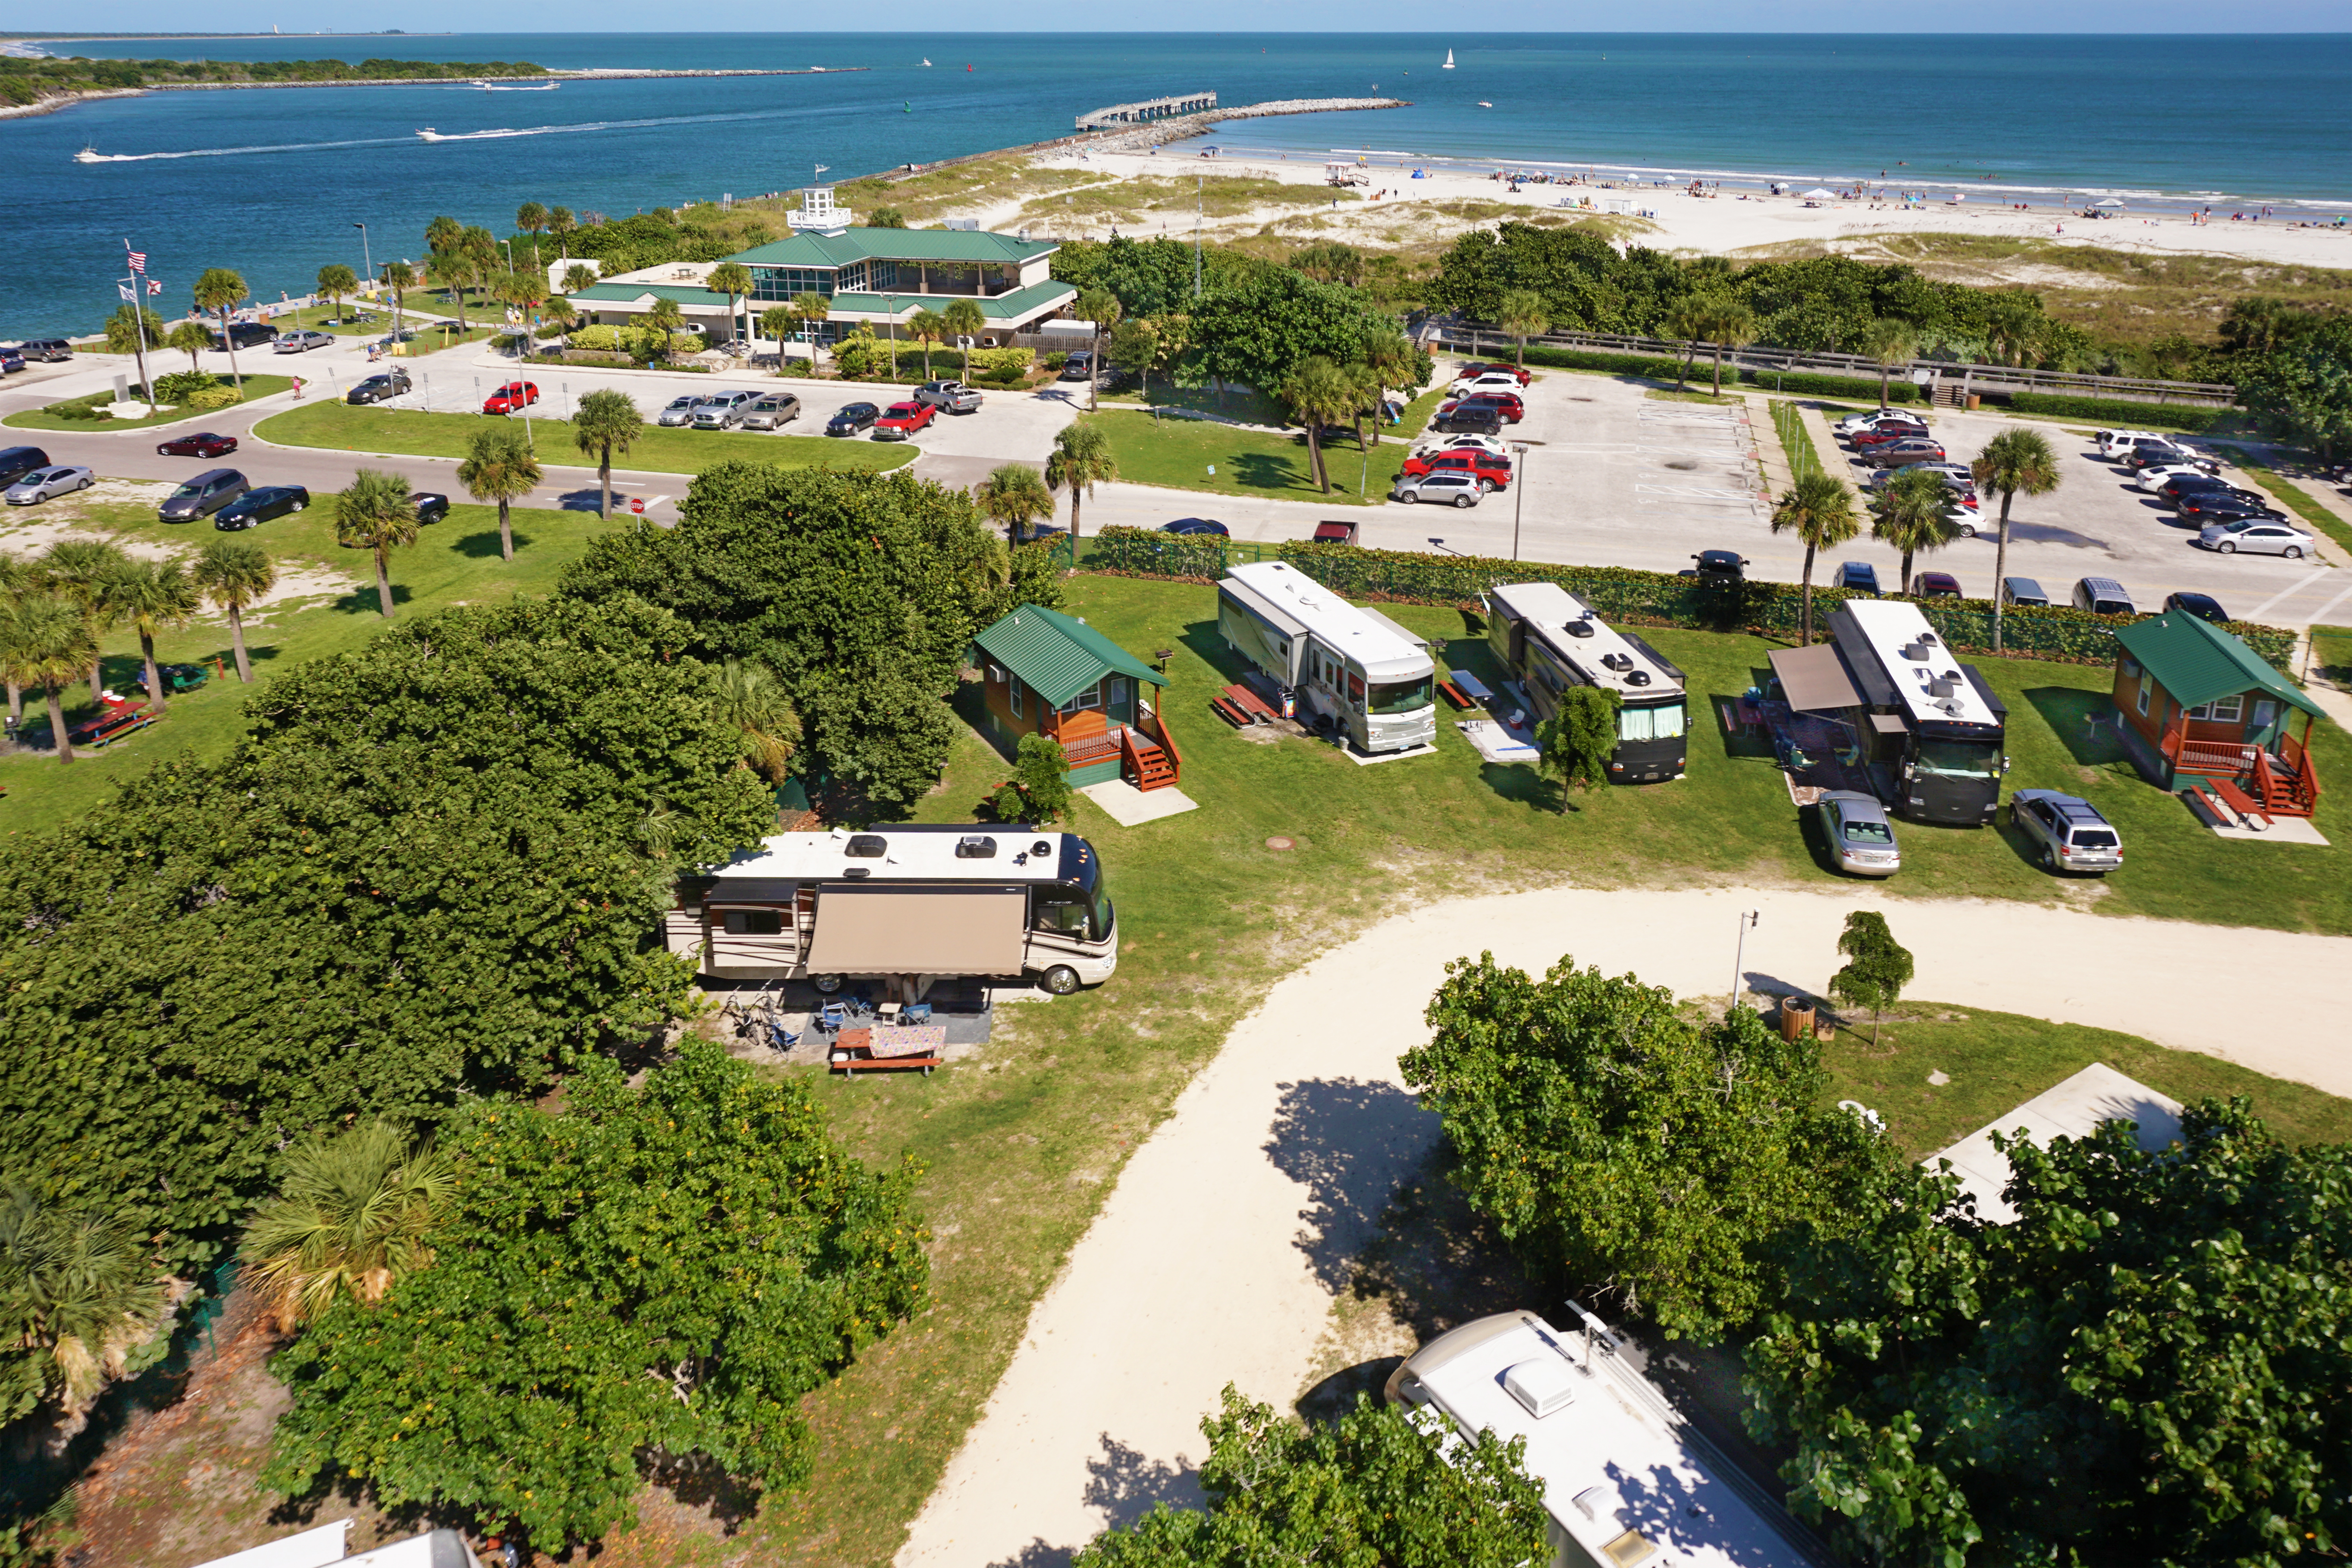 Cabins and RVs near the beach